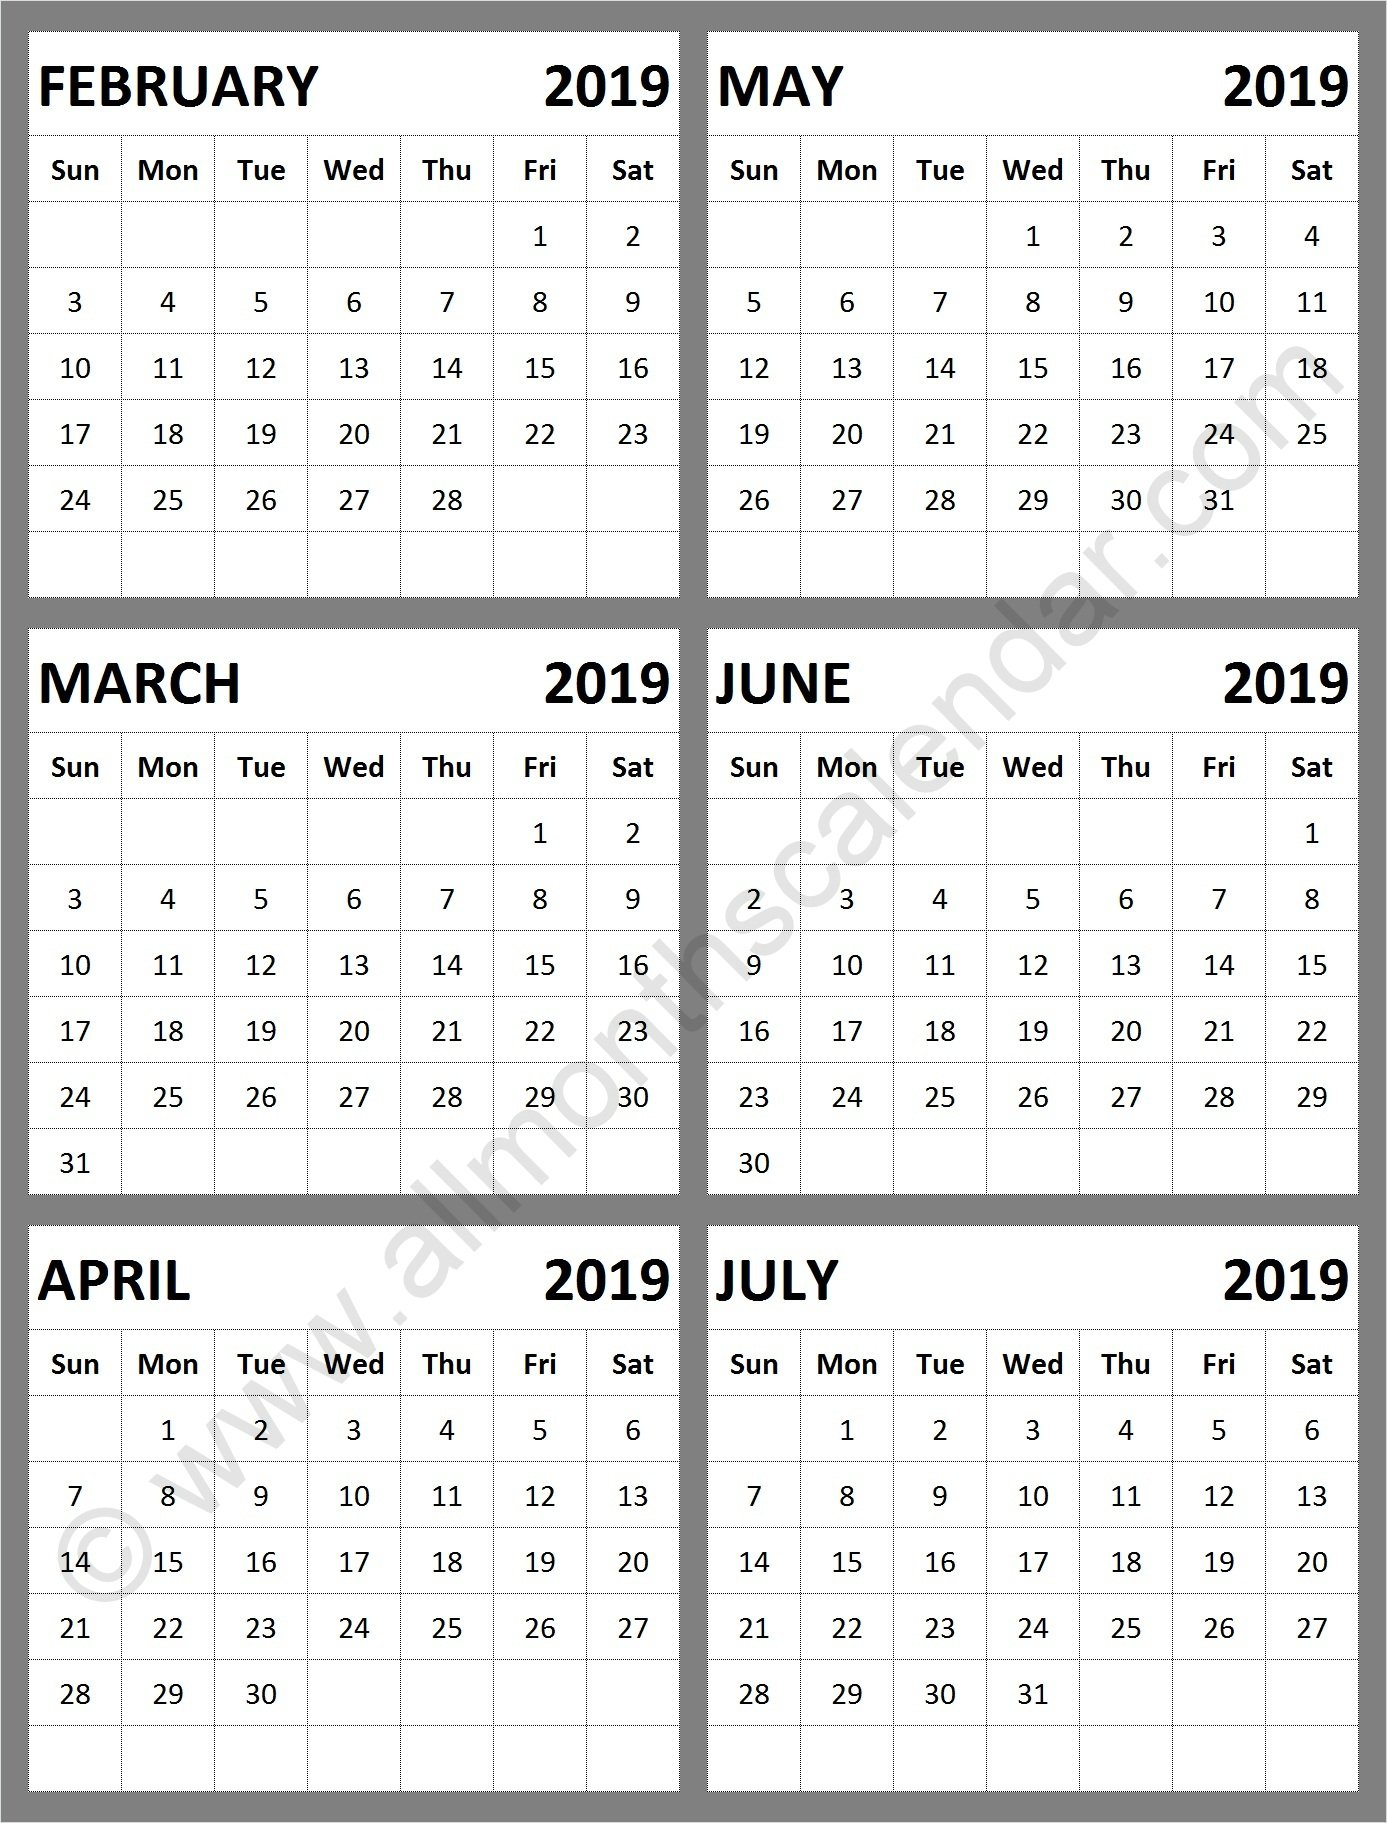 February March April May June July 2019 Calendar Template   Calendar Calendar 2019 May June July